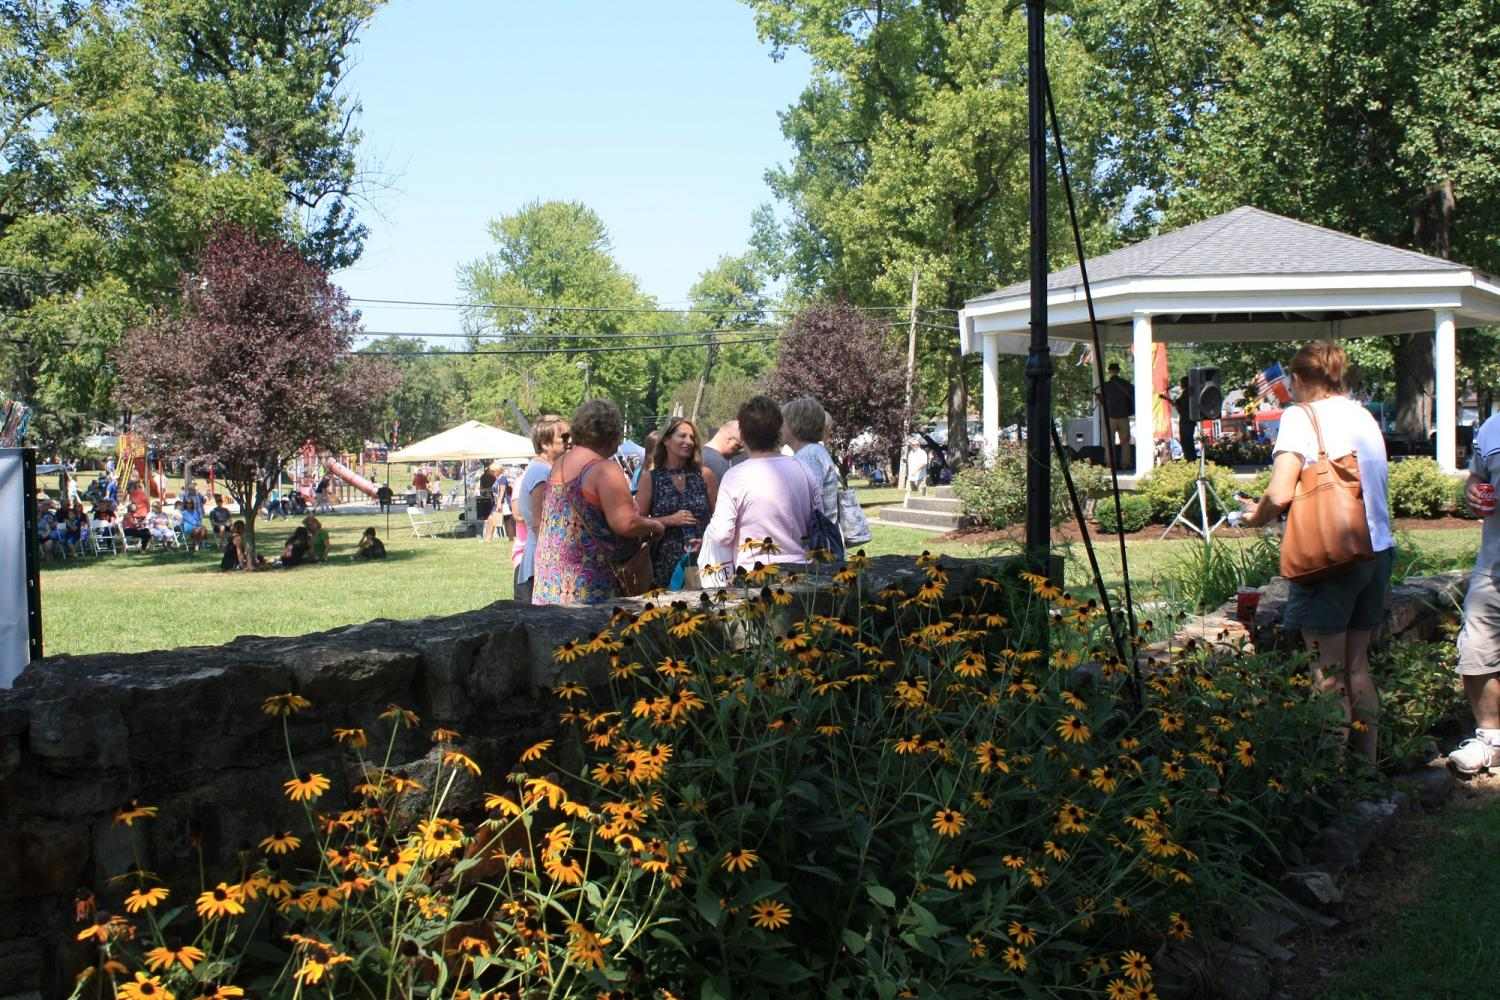 Friends and families gather, Aug 26th, to celebrate the kick off of Art In Speed Park's 27th anniversary.